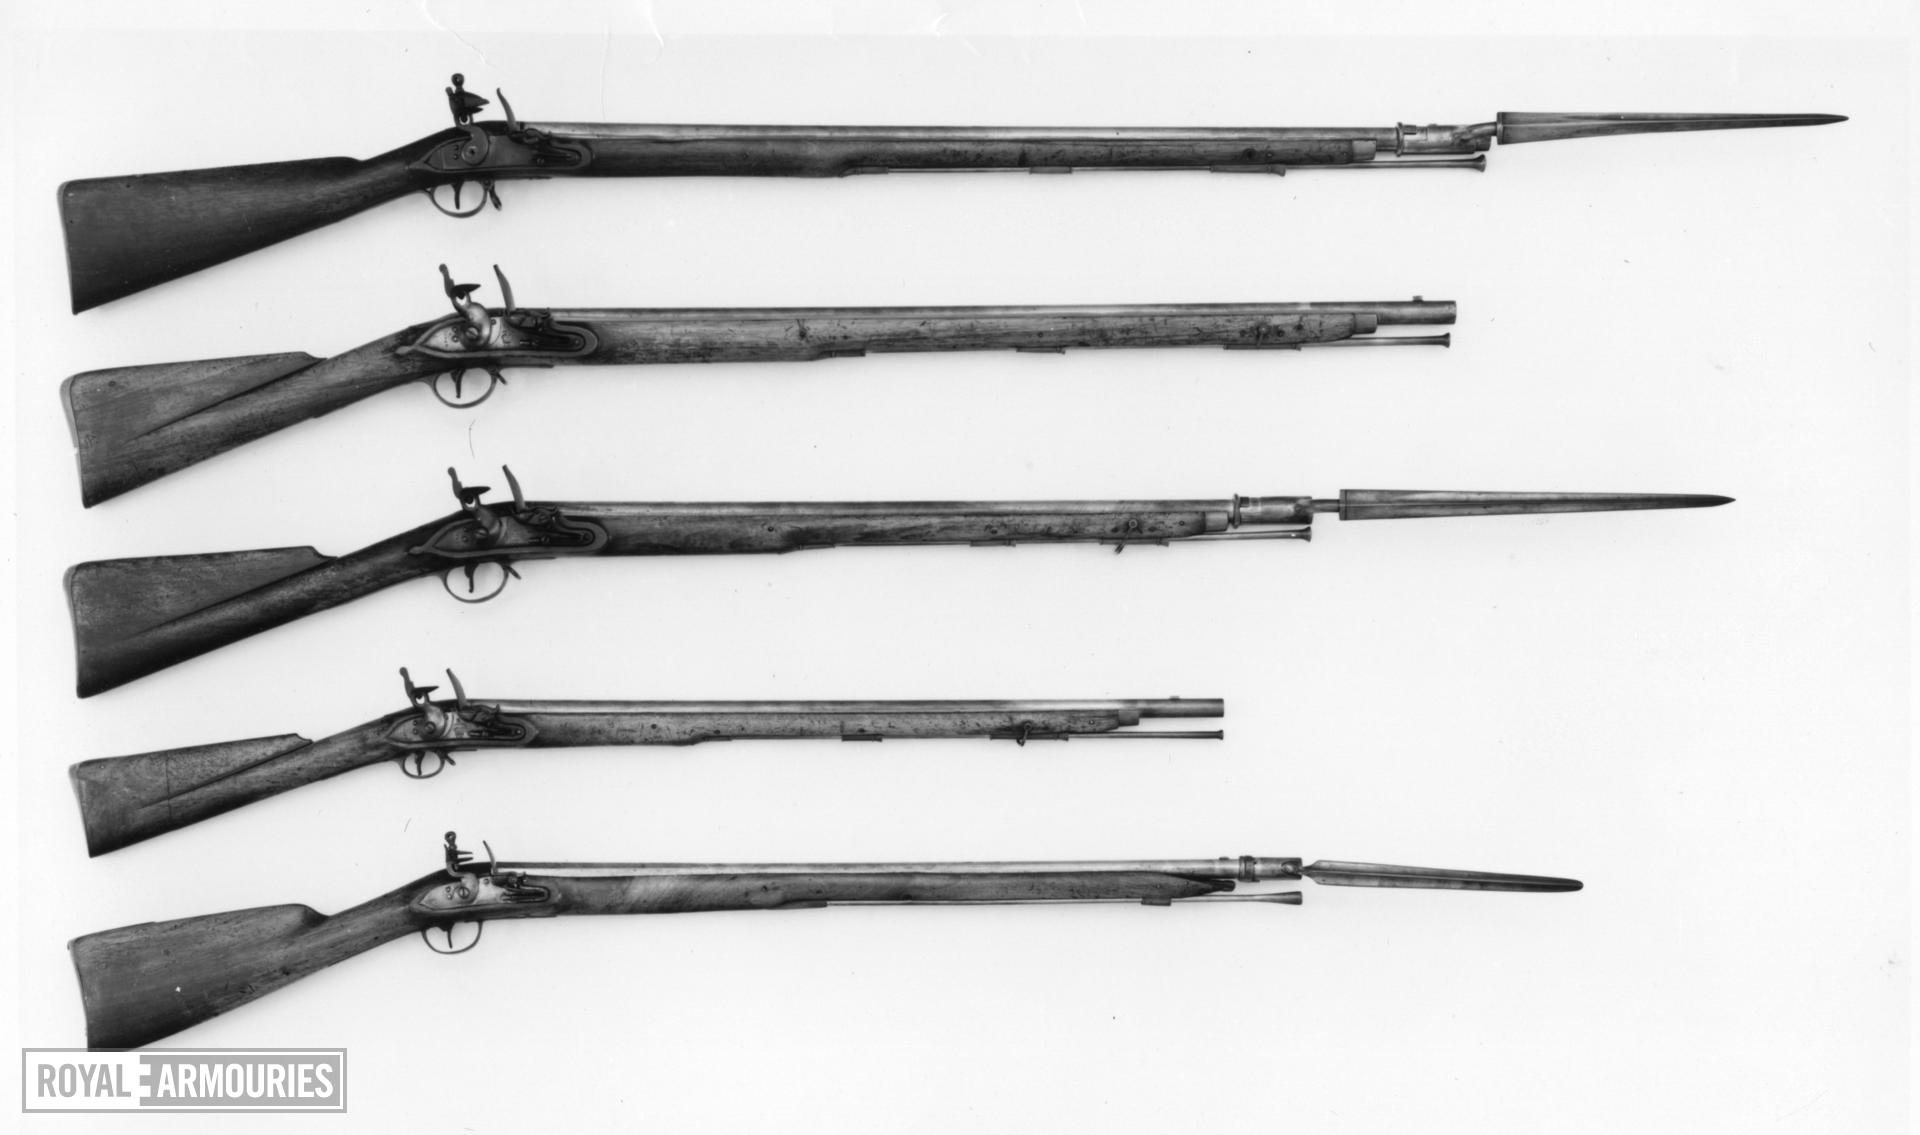 Flintlock musket Small in size, with socket bayonet